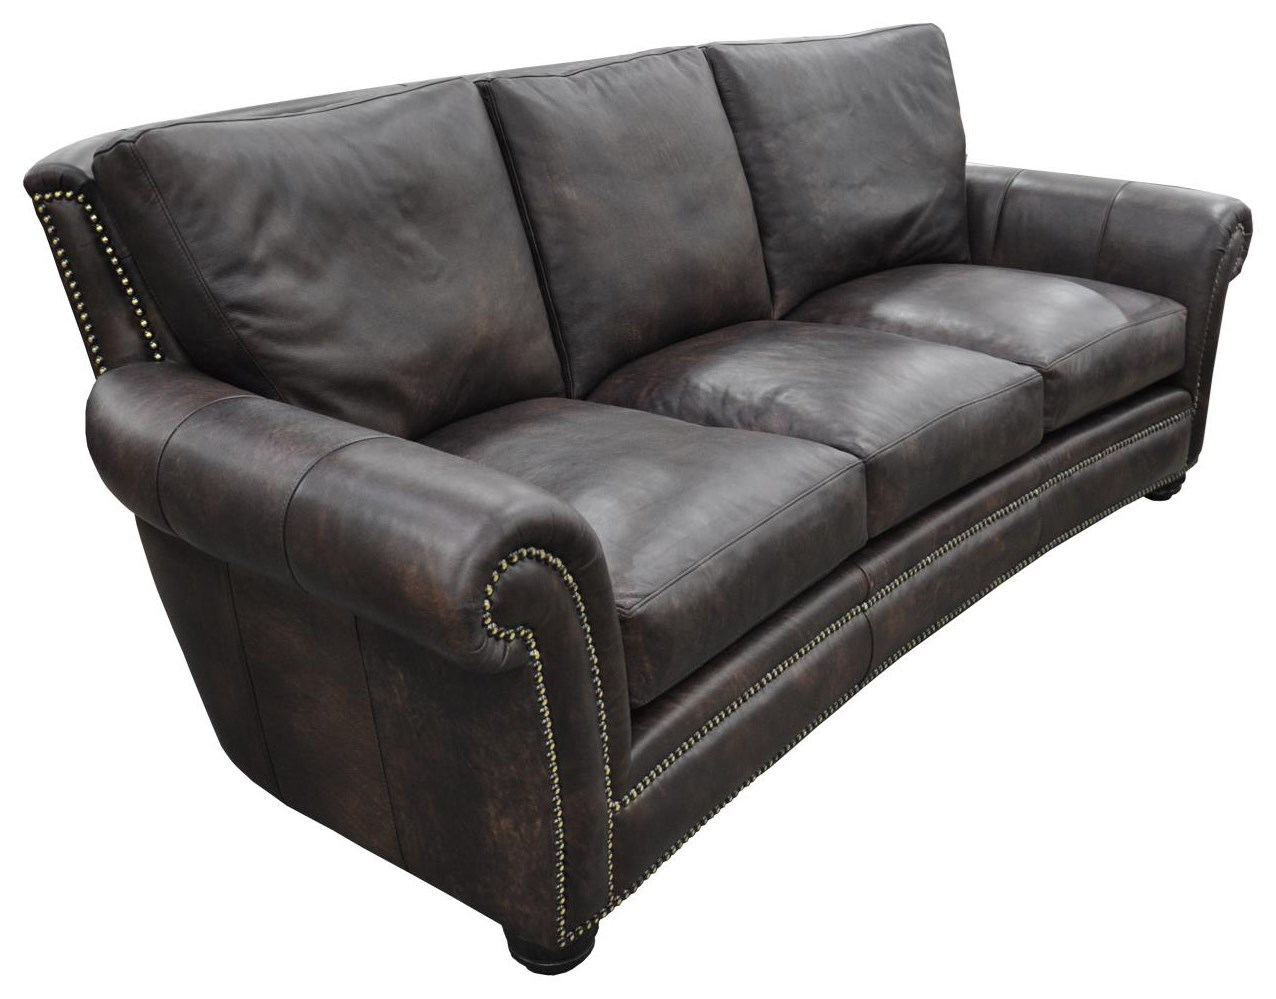 kaymus 13001 rolled arm leather sofa